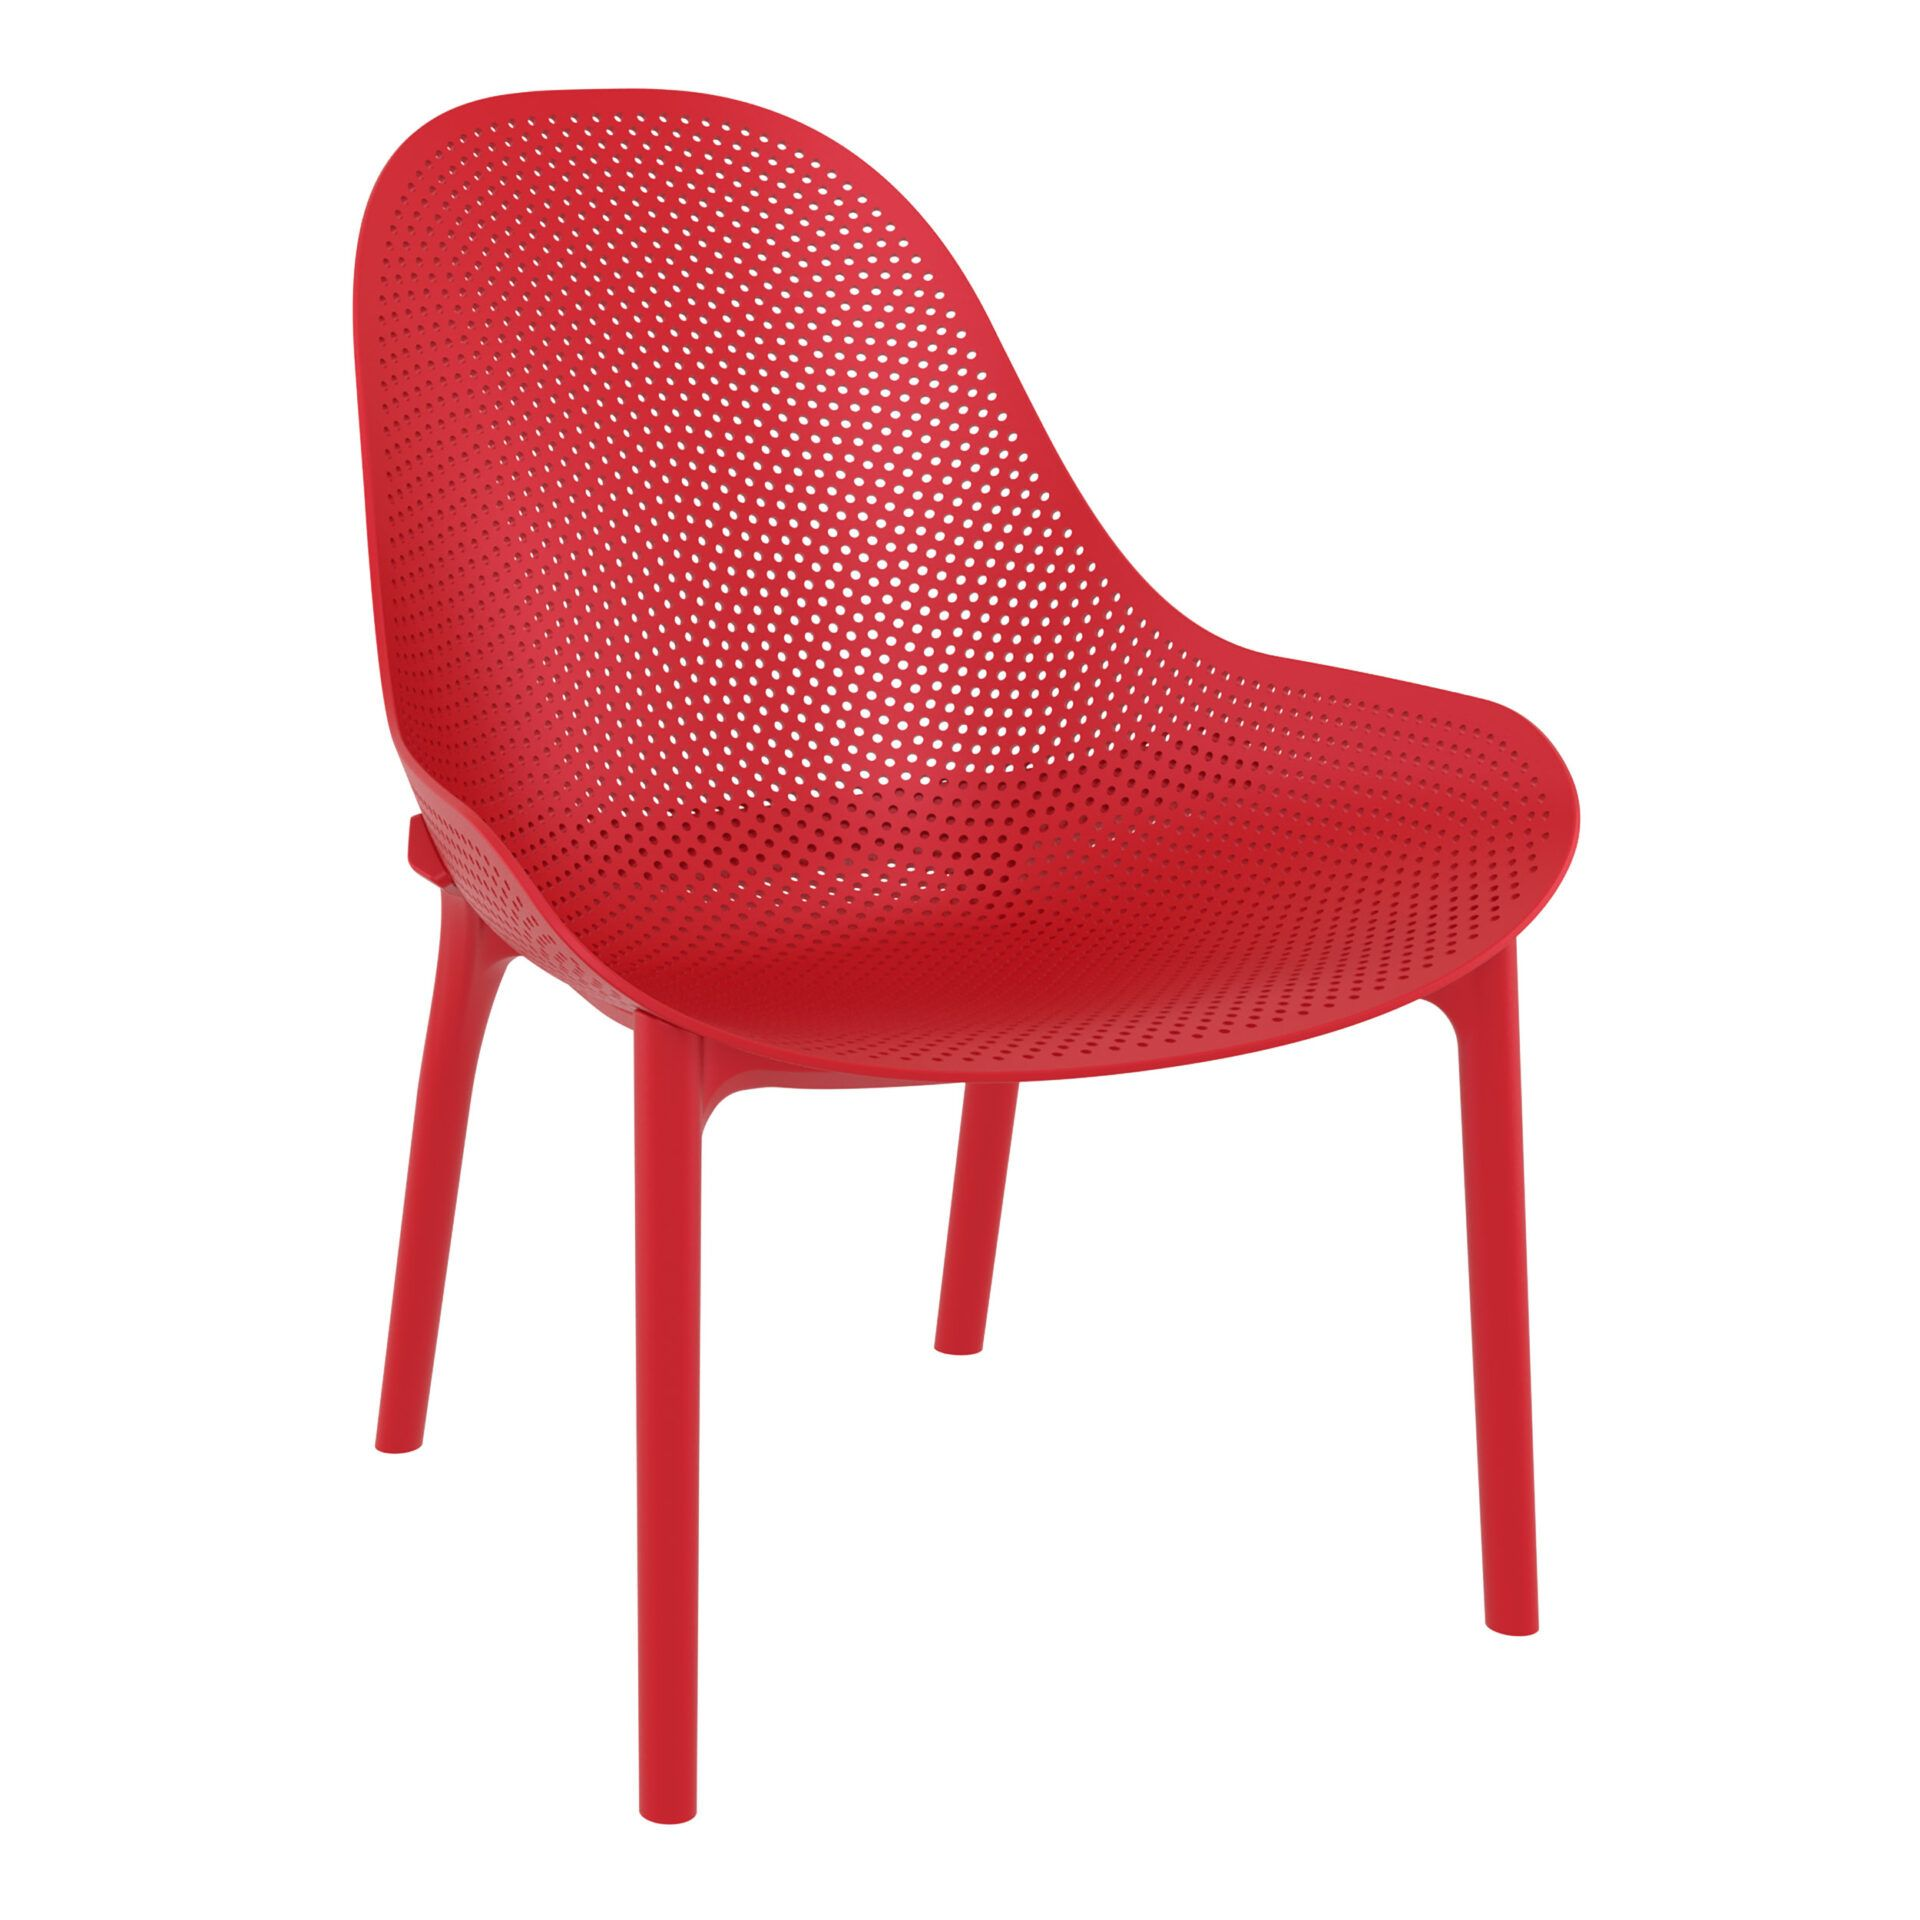 outdoor seating polypropylene sky lounge red front side